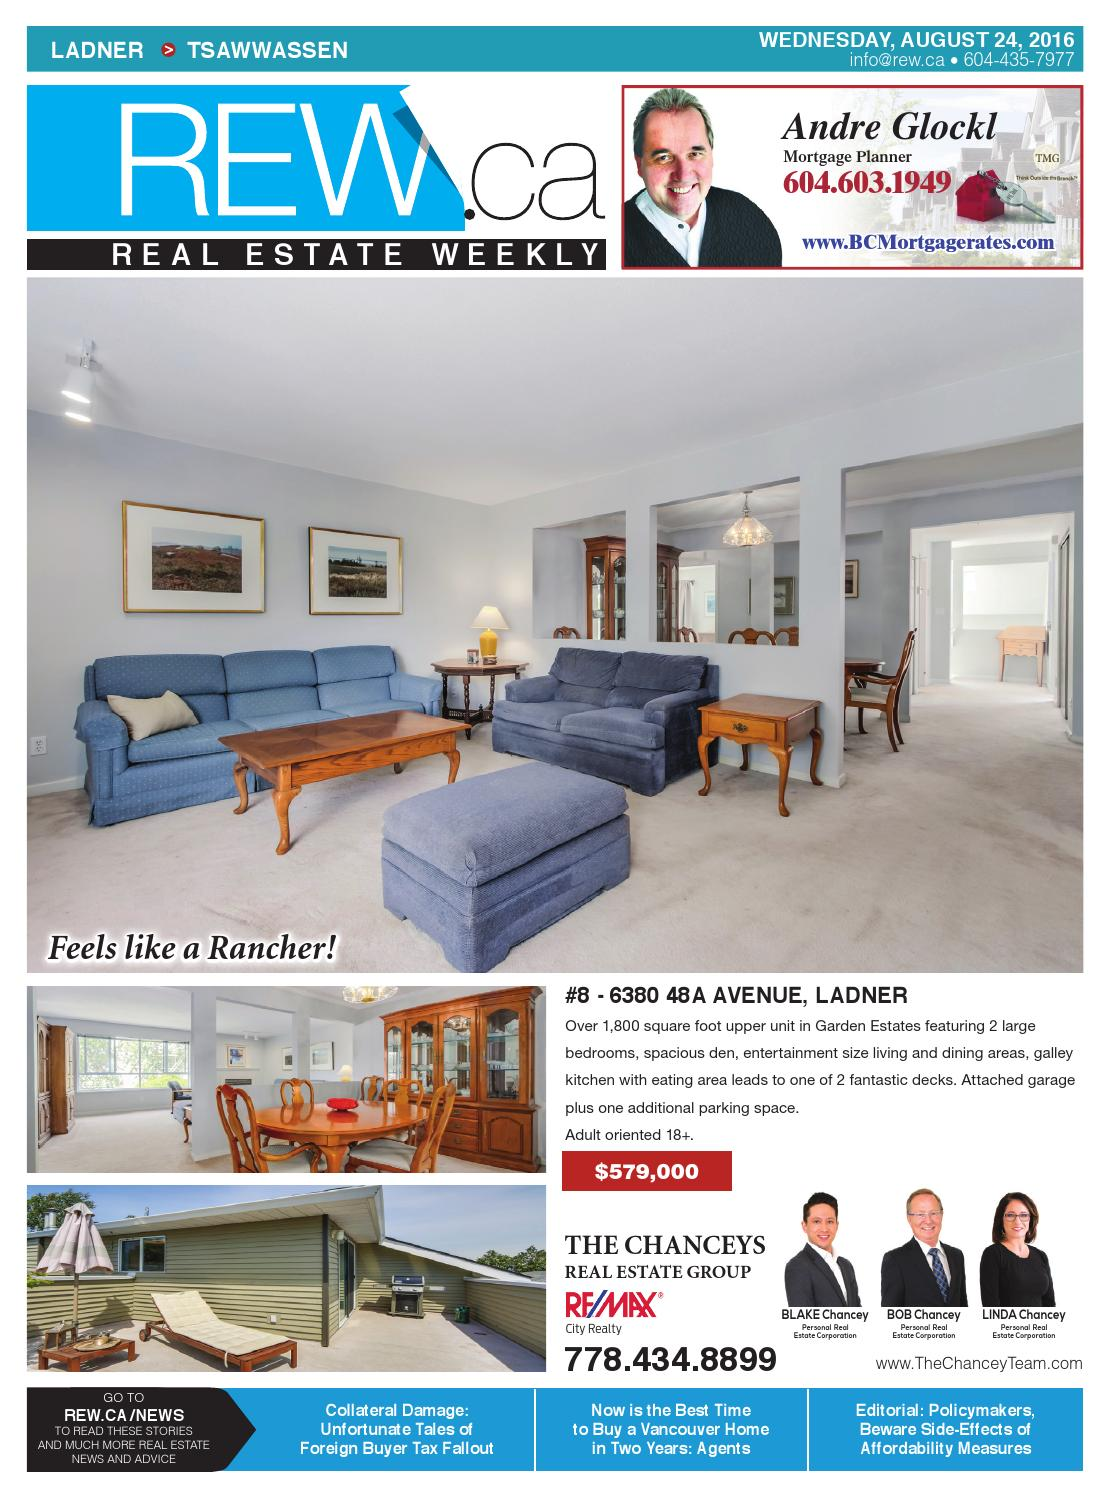 realtor and interior designer debbie evans realtor interior design consultant remax west LADNER - TSAWWASSEN Aug 24, 2016 Real Estate Weekly by Real Estate Weekly -  issuu